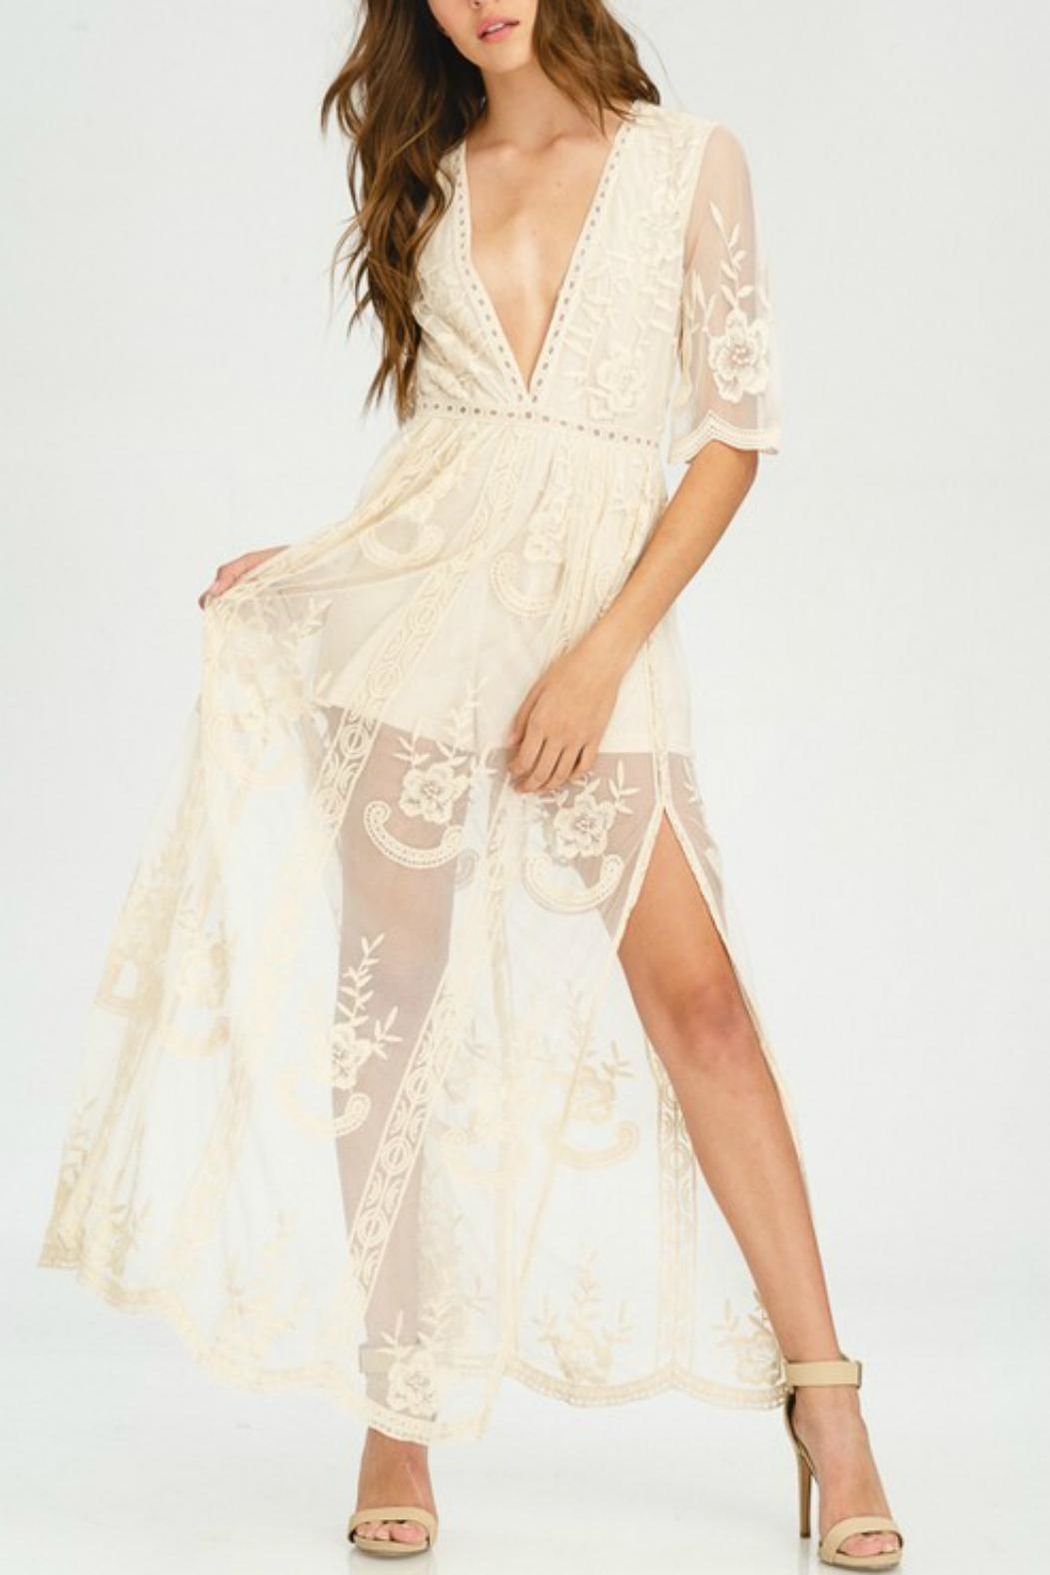 Pretty Little Things Lace Maxi Dress - Main Image